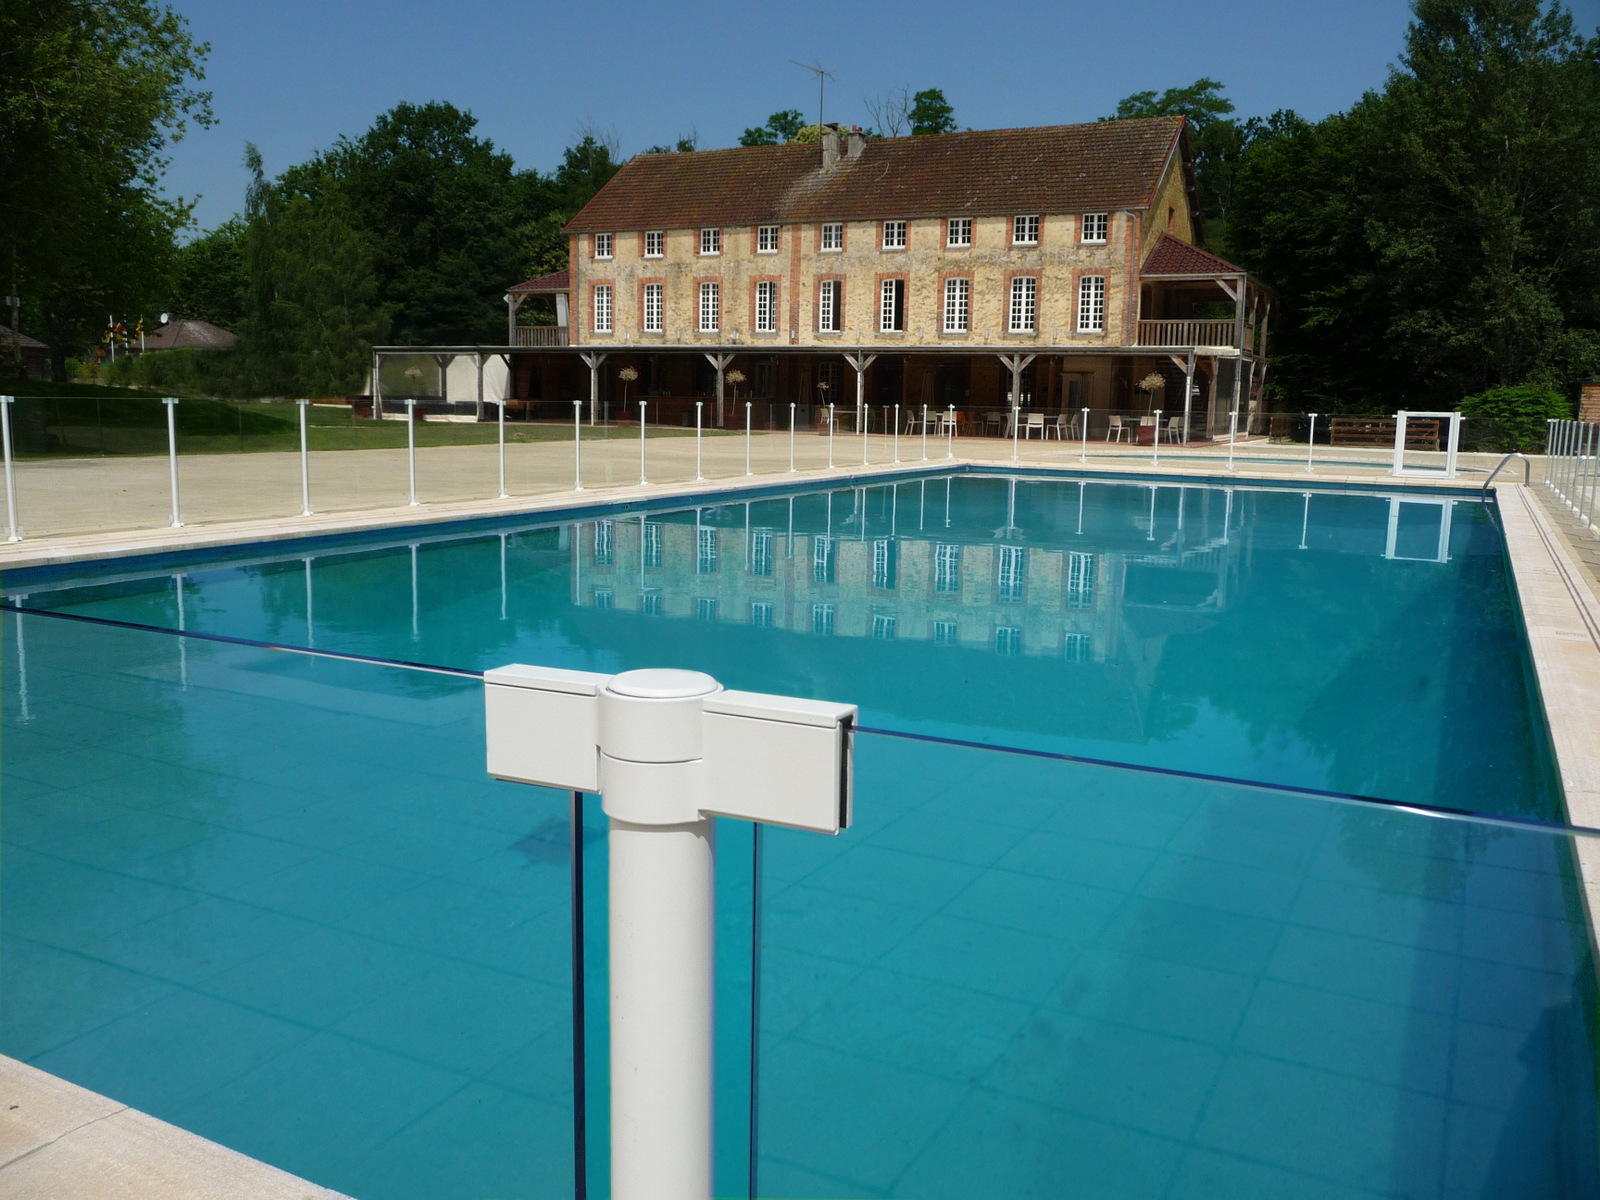 Barri re de piscine en aluminium et protection aluminium for Piscine hors sol 1m de profondeur